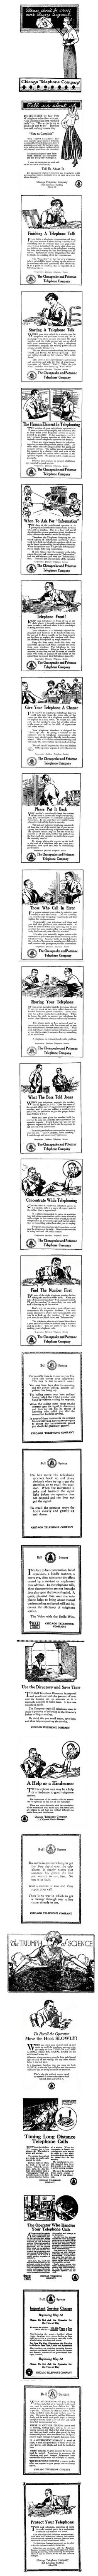 The telephone company attempts to teach the public how to use the telephone, 1917-1919